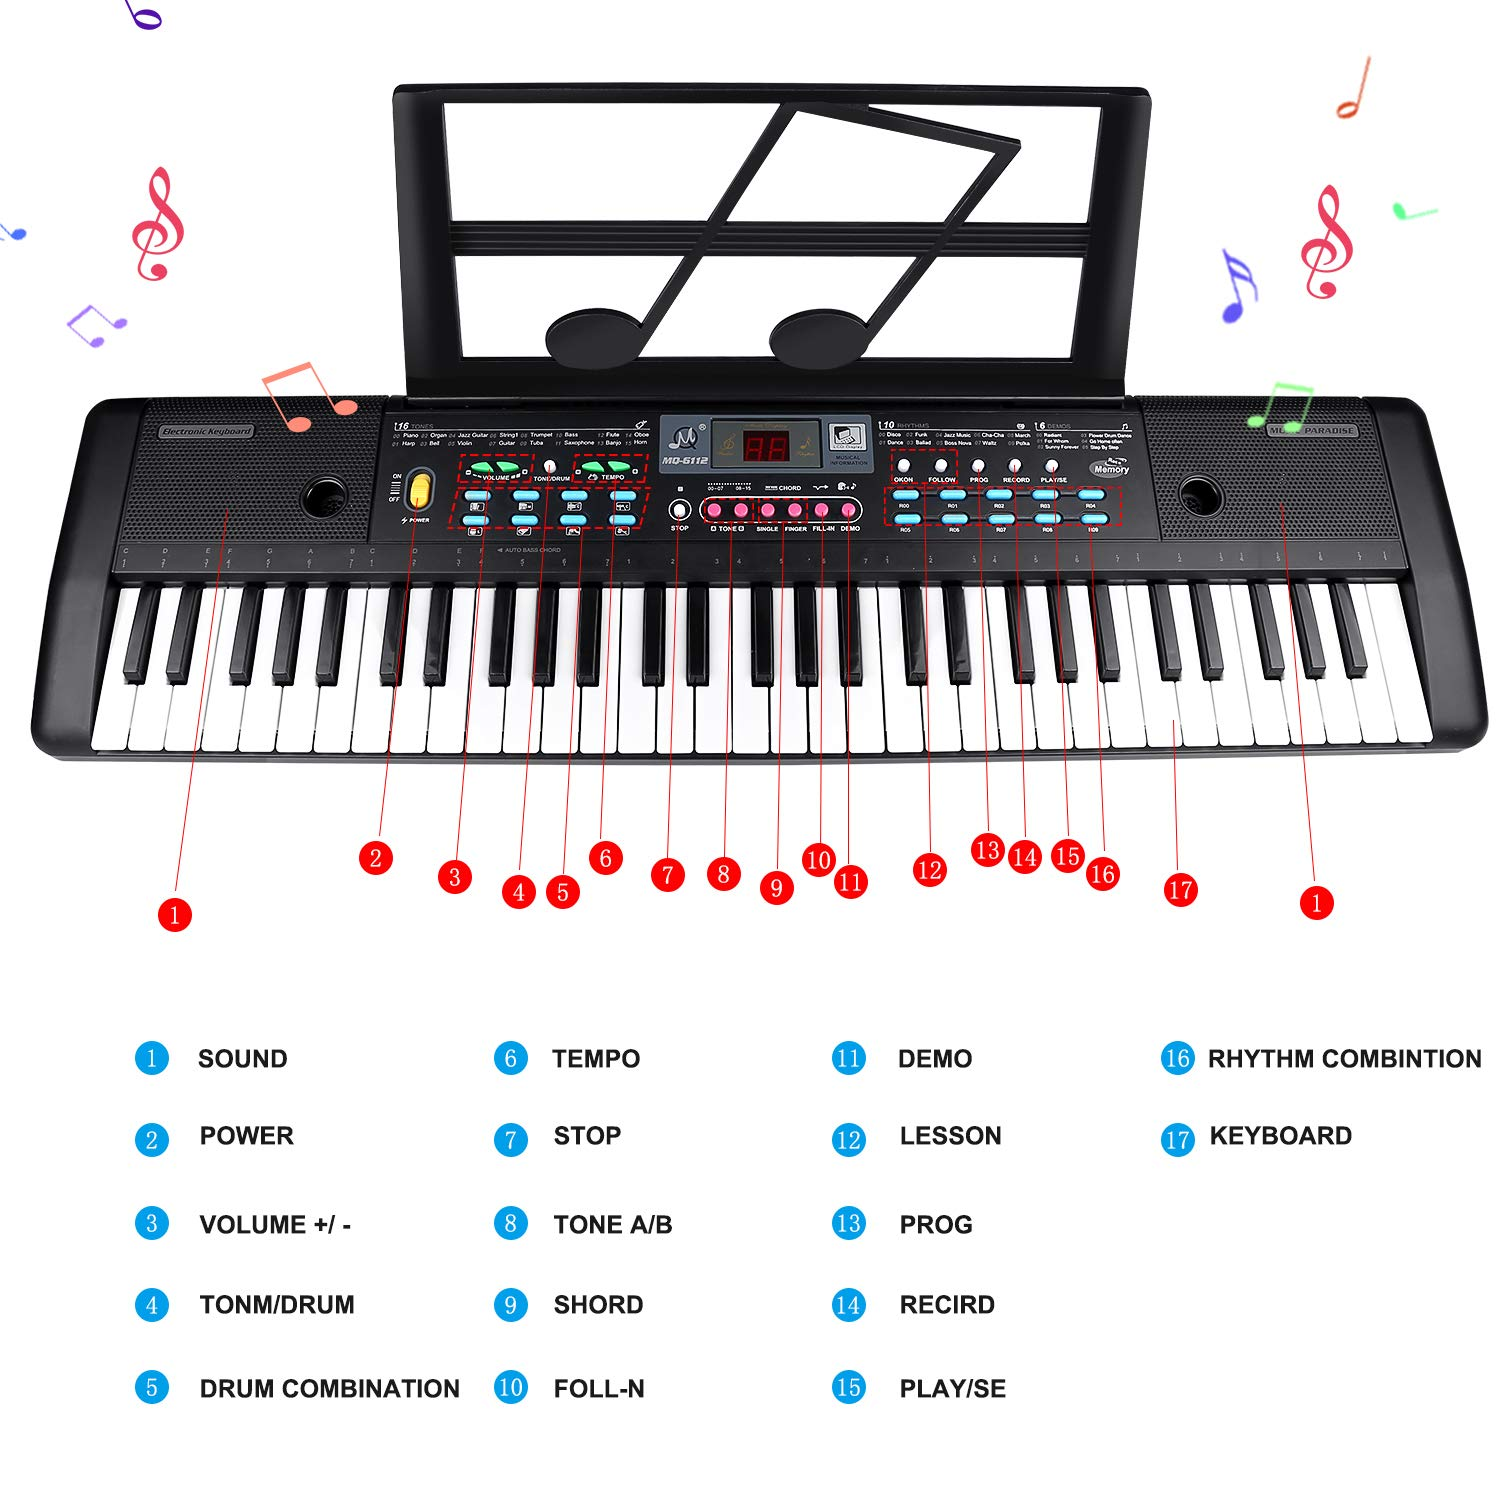 ZJTL 61-Key Digital Electric Piano Keyboard & Music Stand & microphone- Portable Electronic Keyboard (Kids & Adults) MQ-6112 by ZJTL (Image #2)